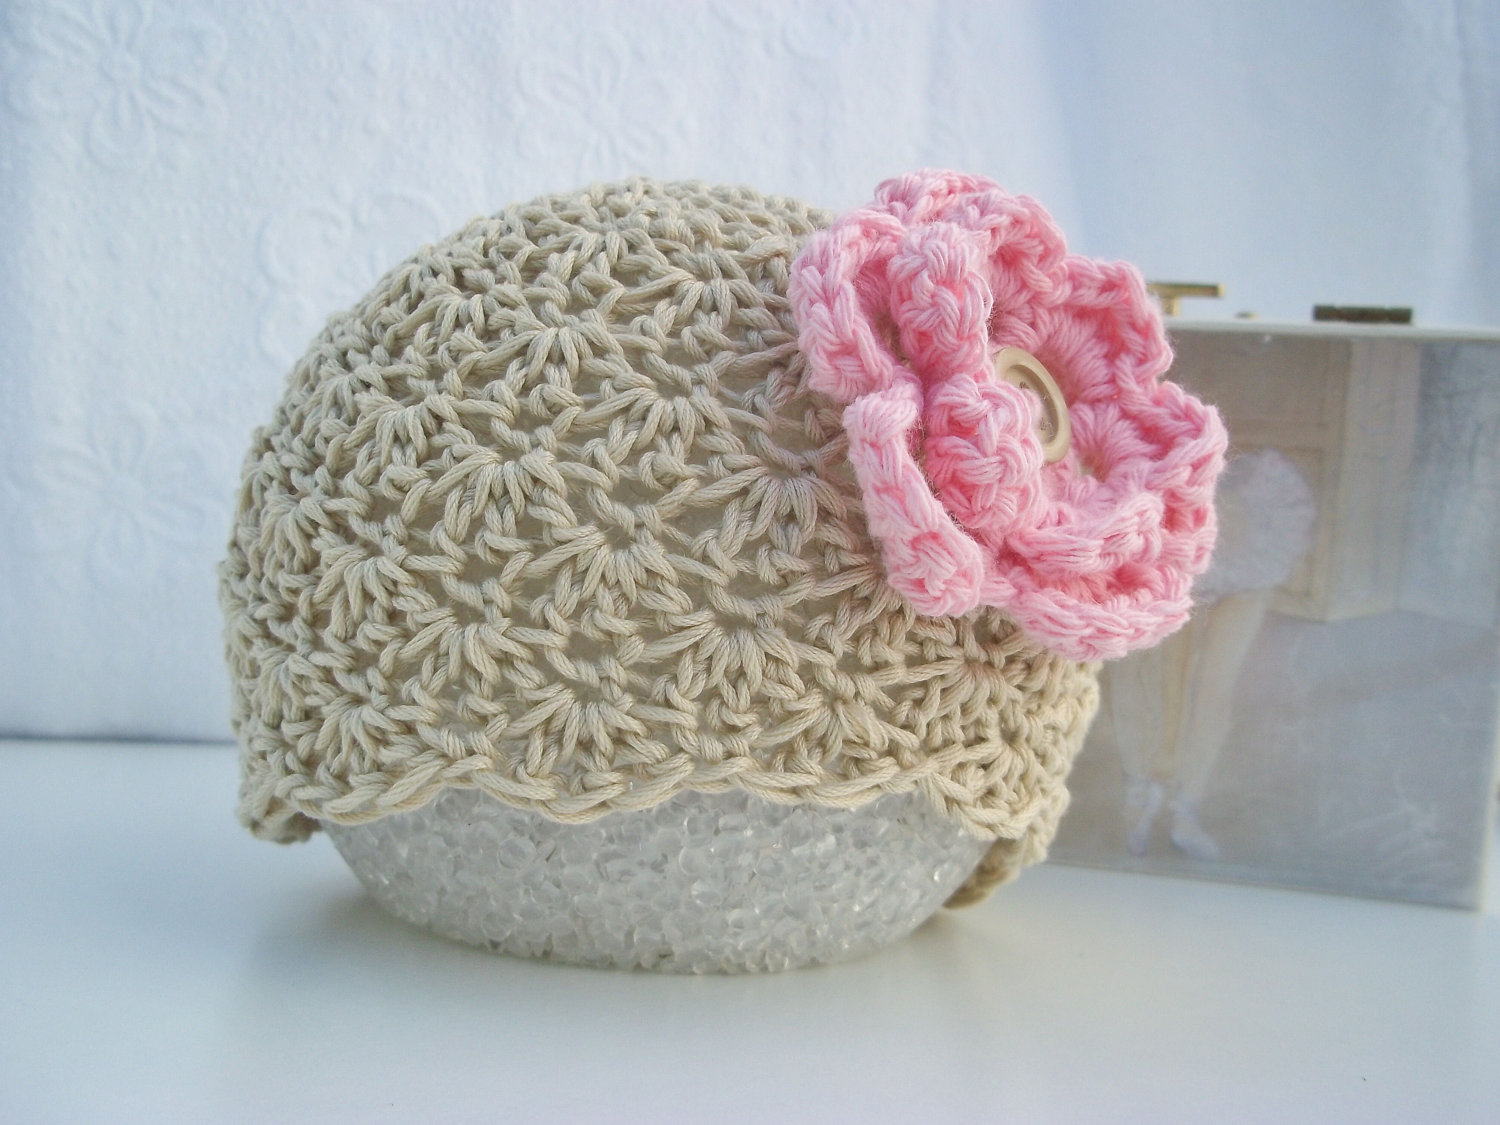 Free Crochet Patterns For Baby Girl Beanie : Crochet baby hat Baby girl hat Newborn baby hat Beige Tan ...